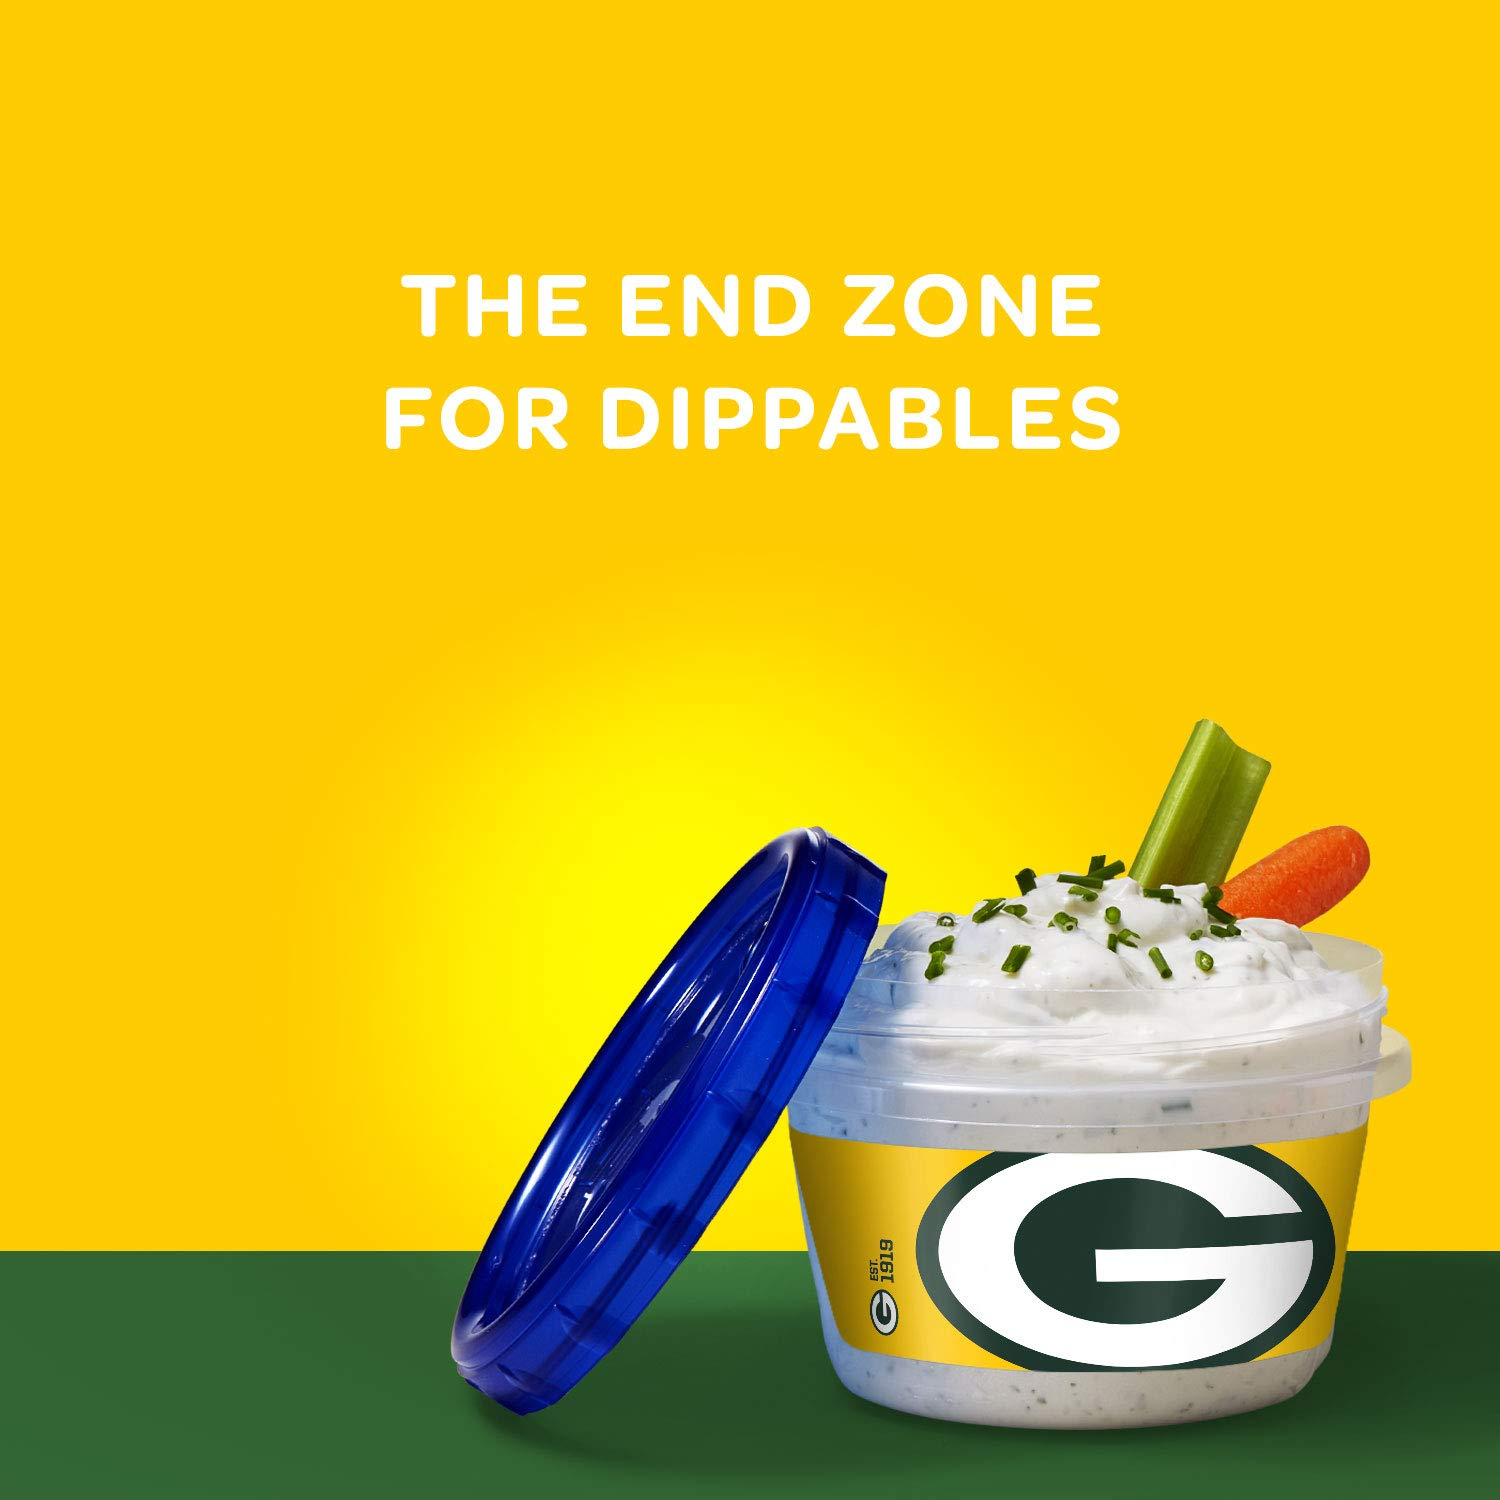 Amazon.com : Ziploc Brand NFL Green Bay Packers Twist n Loc Containers, Small, 2 ct, 3 pack : Grocery & Gourmet Food